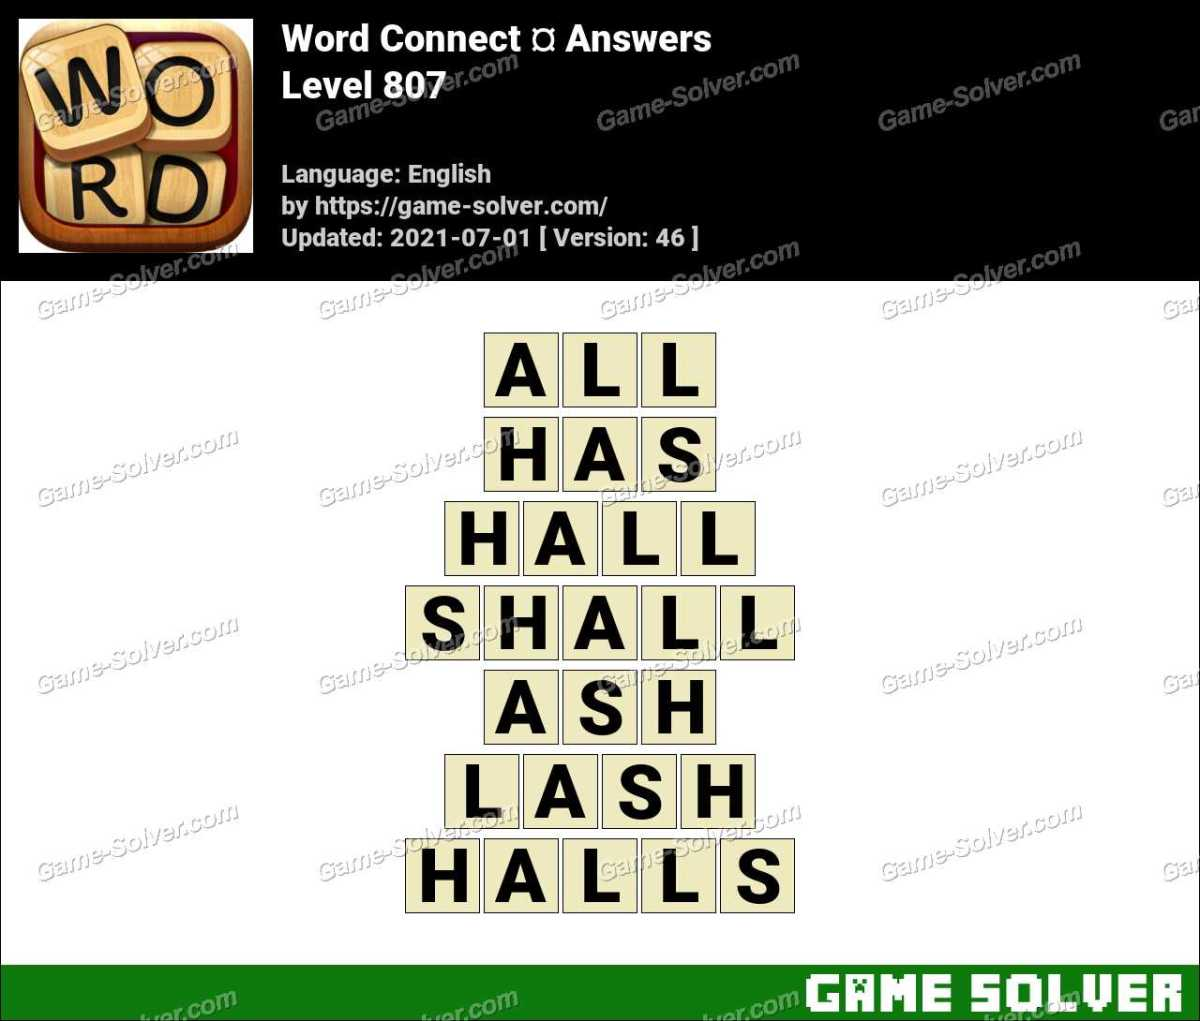 Word Connect Level 807 Answers